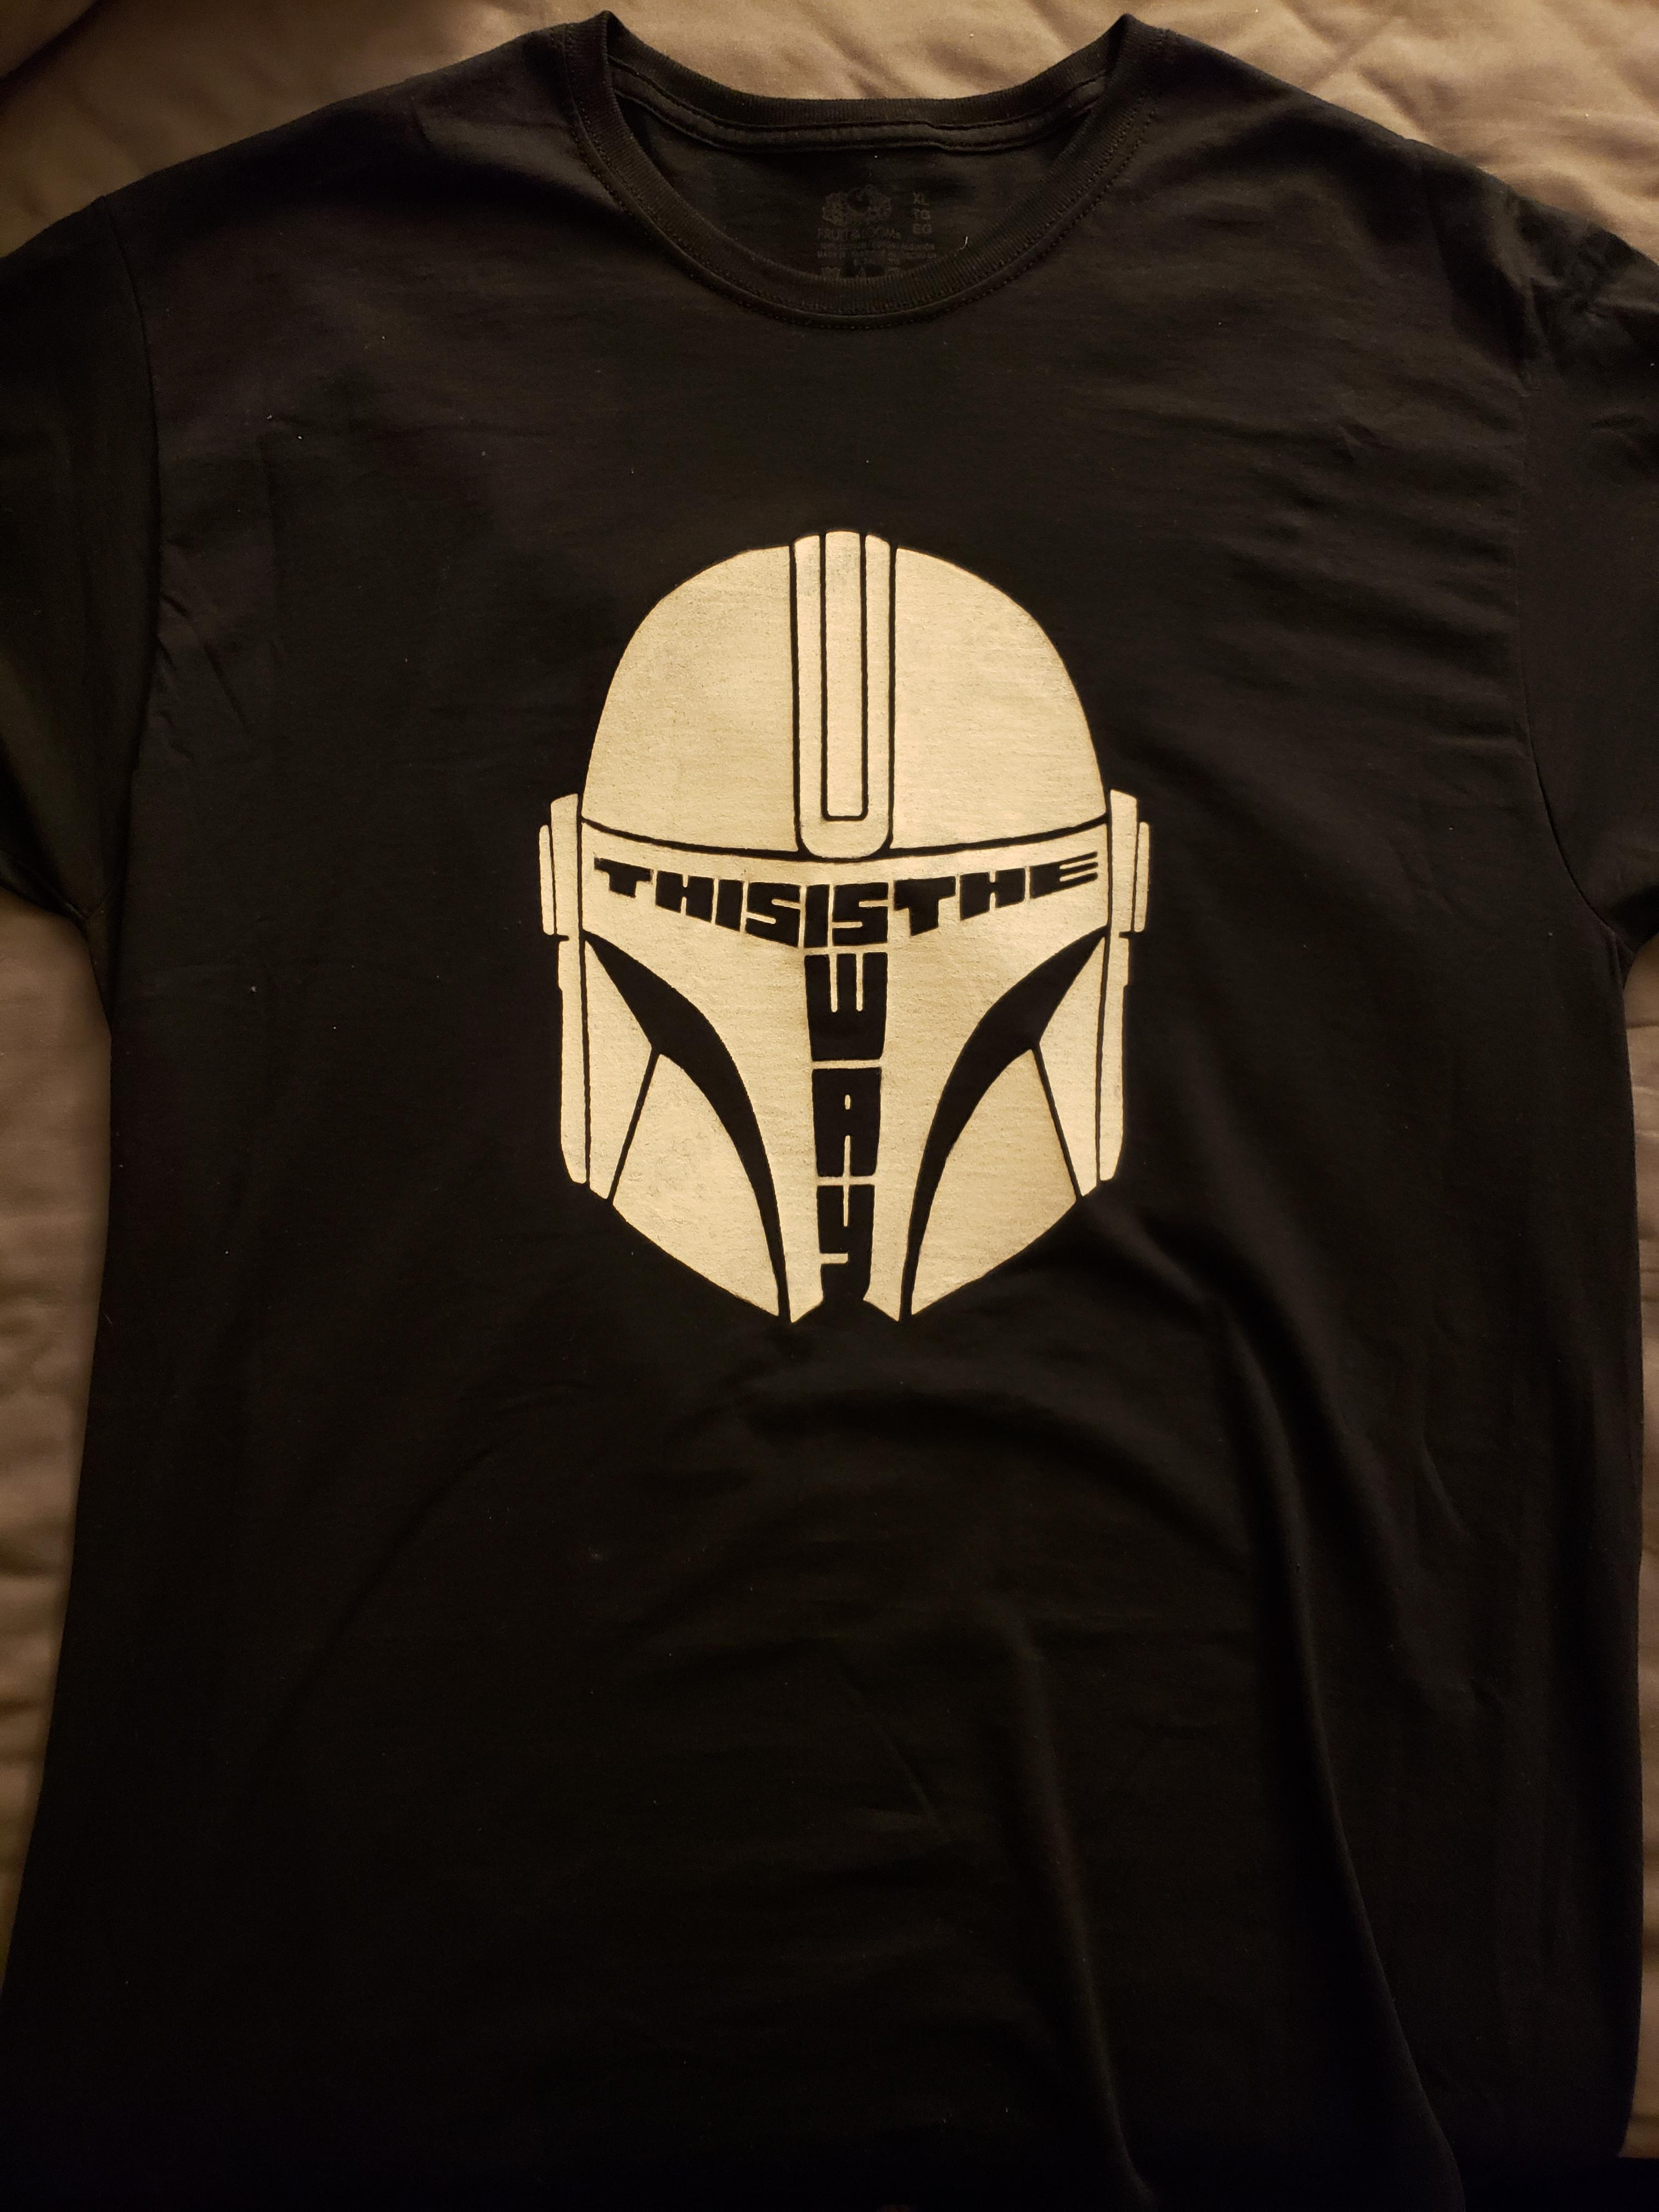 I decided to make my own Mando shirt, and I\'m really happy with how it came out.